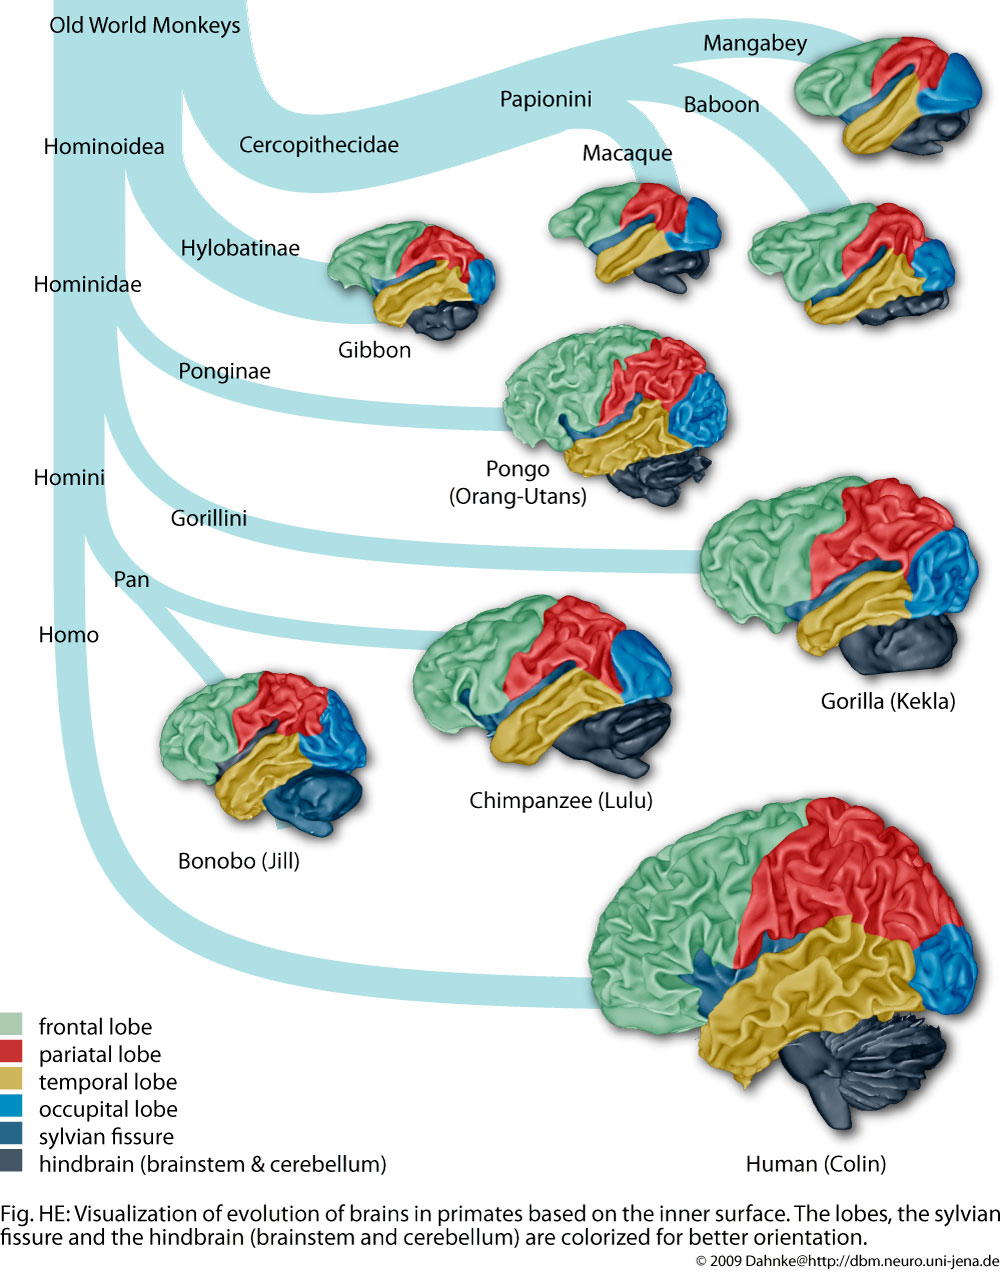 human development brain This early period of development, (conception to ages 6-8), affects the next stage of human development, as well as the later stages.